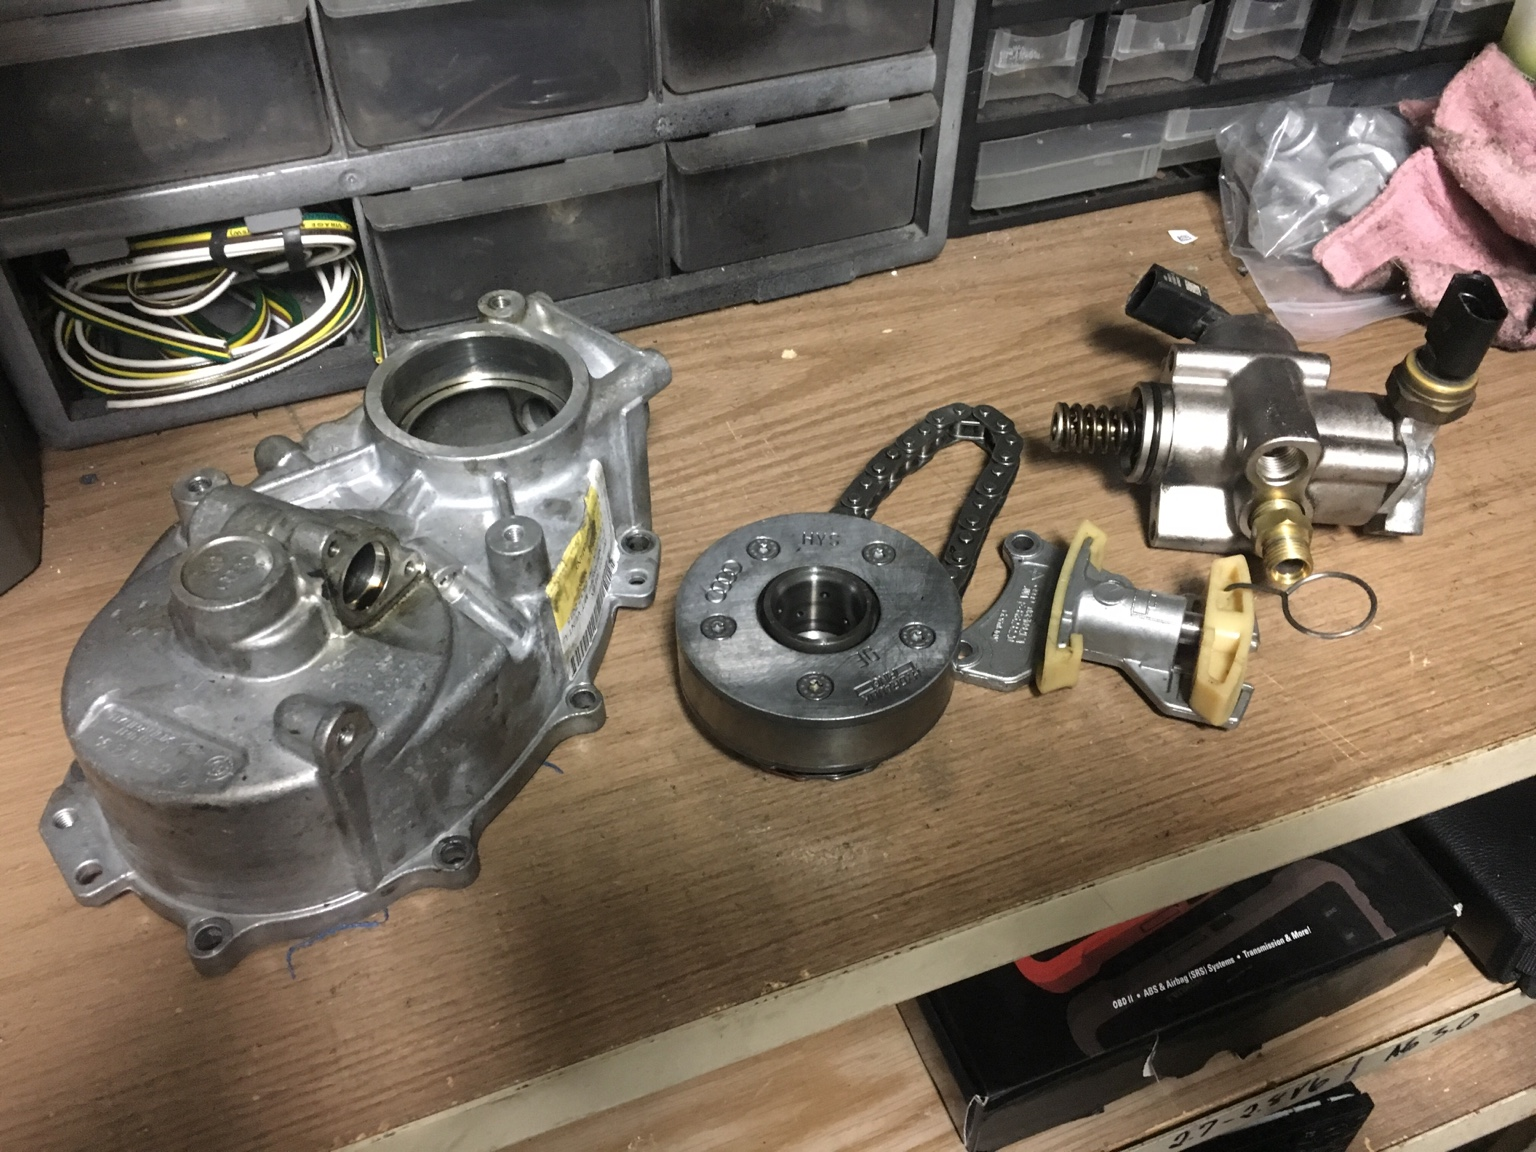 FSI parts timing chain cover, HPFP, chain, etc - VW GTI